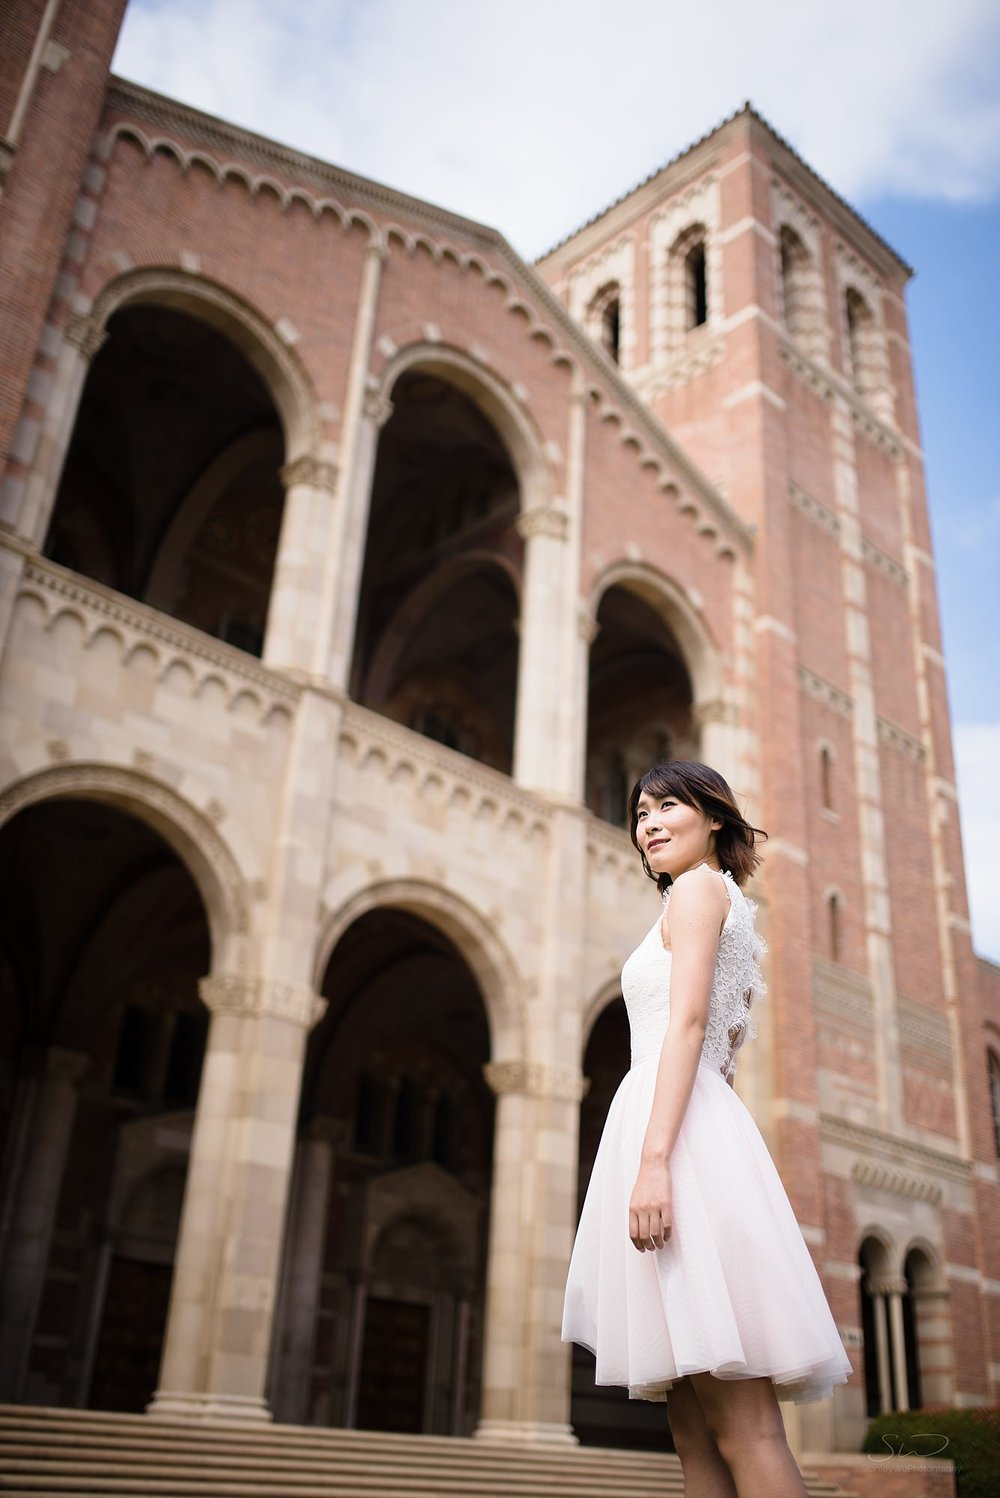 epic graduation senior portrait of a chinese girl looking up towards her future in front of royce hall at ucla in los angeles